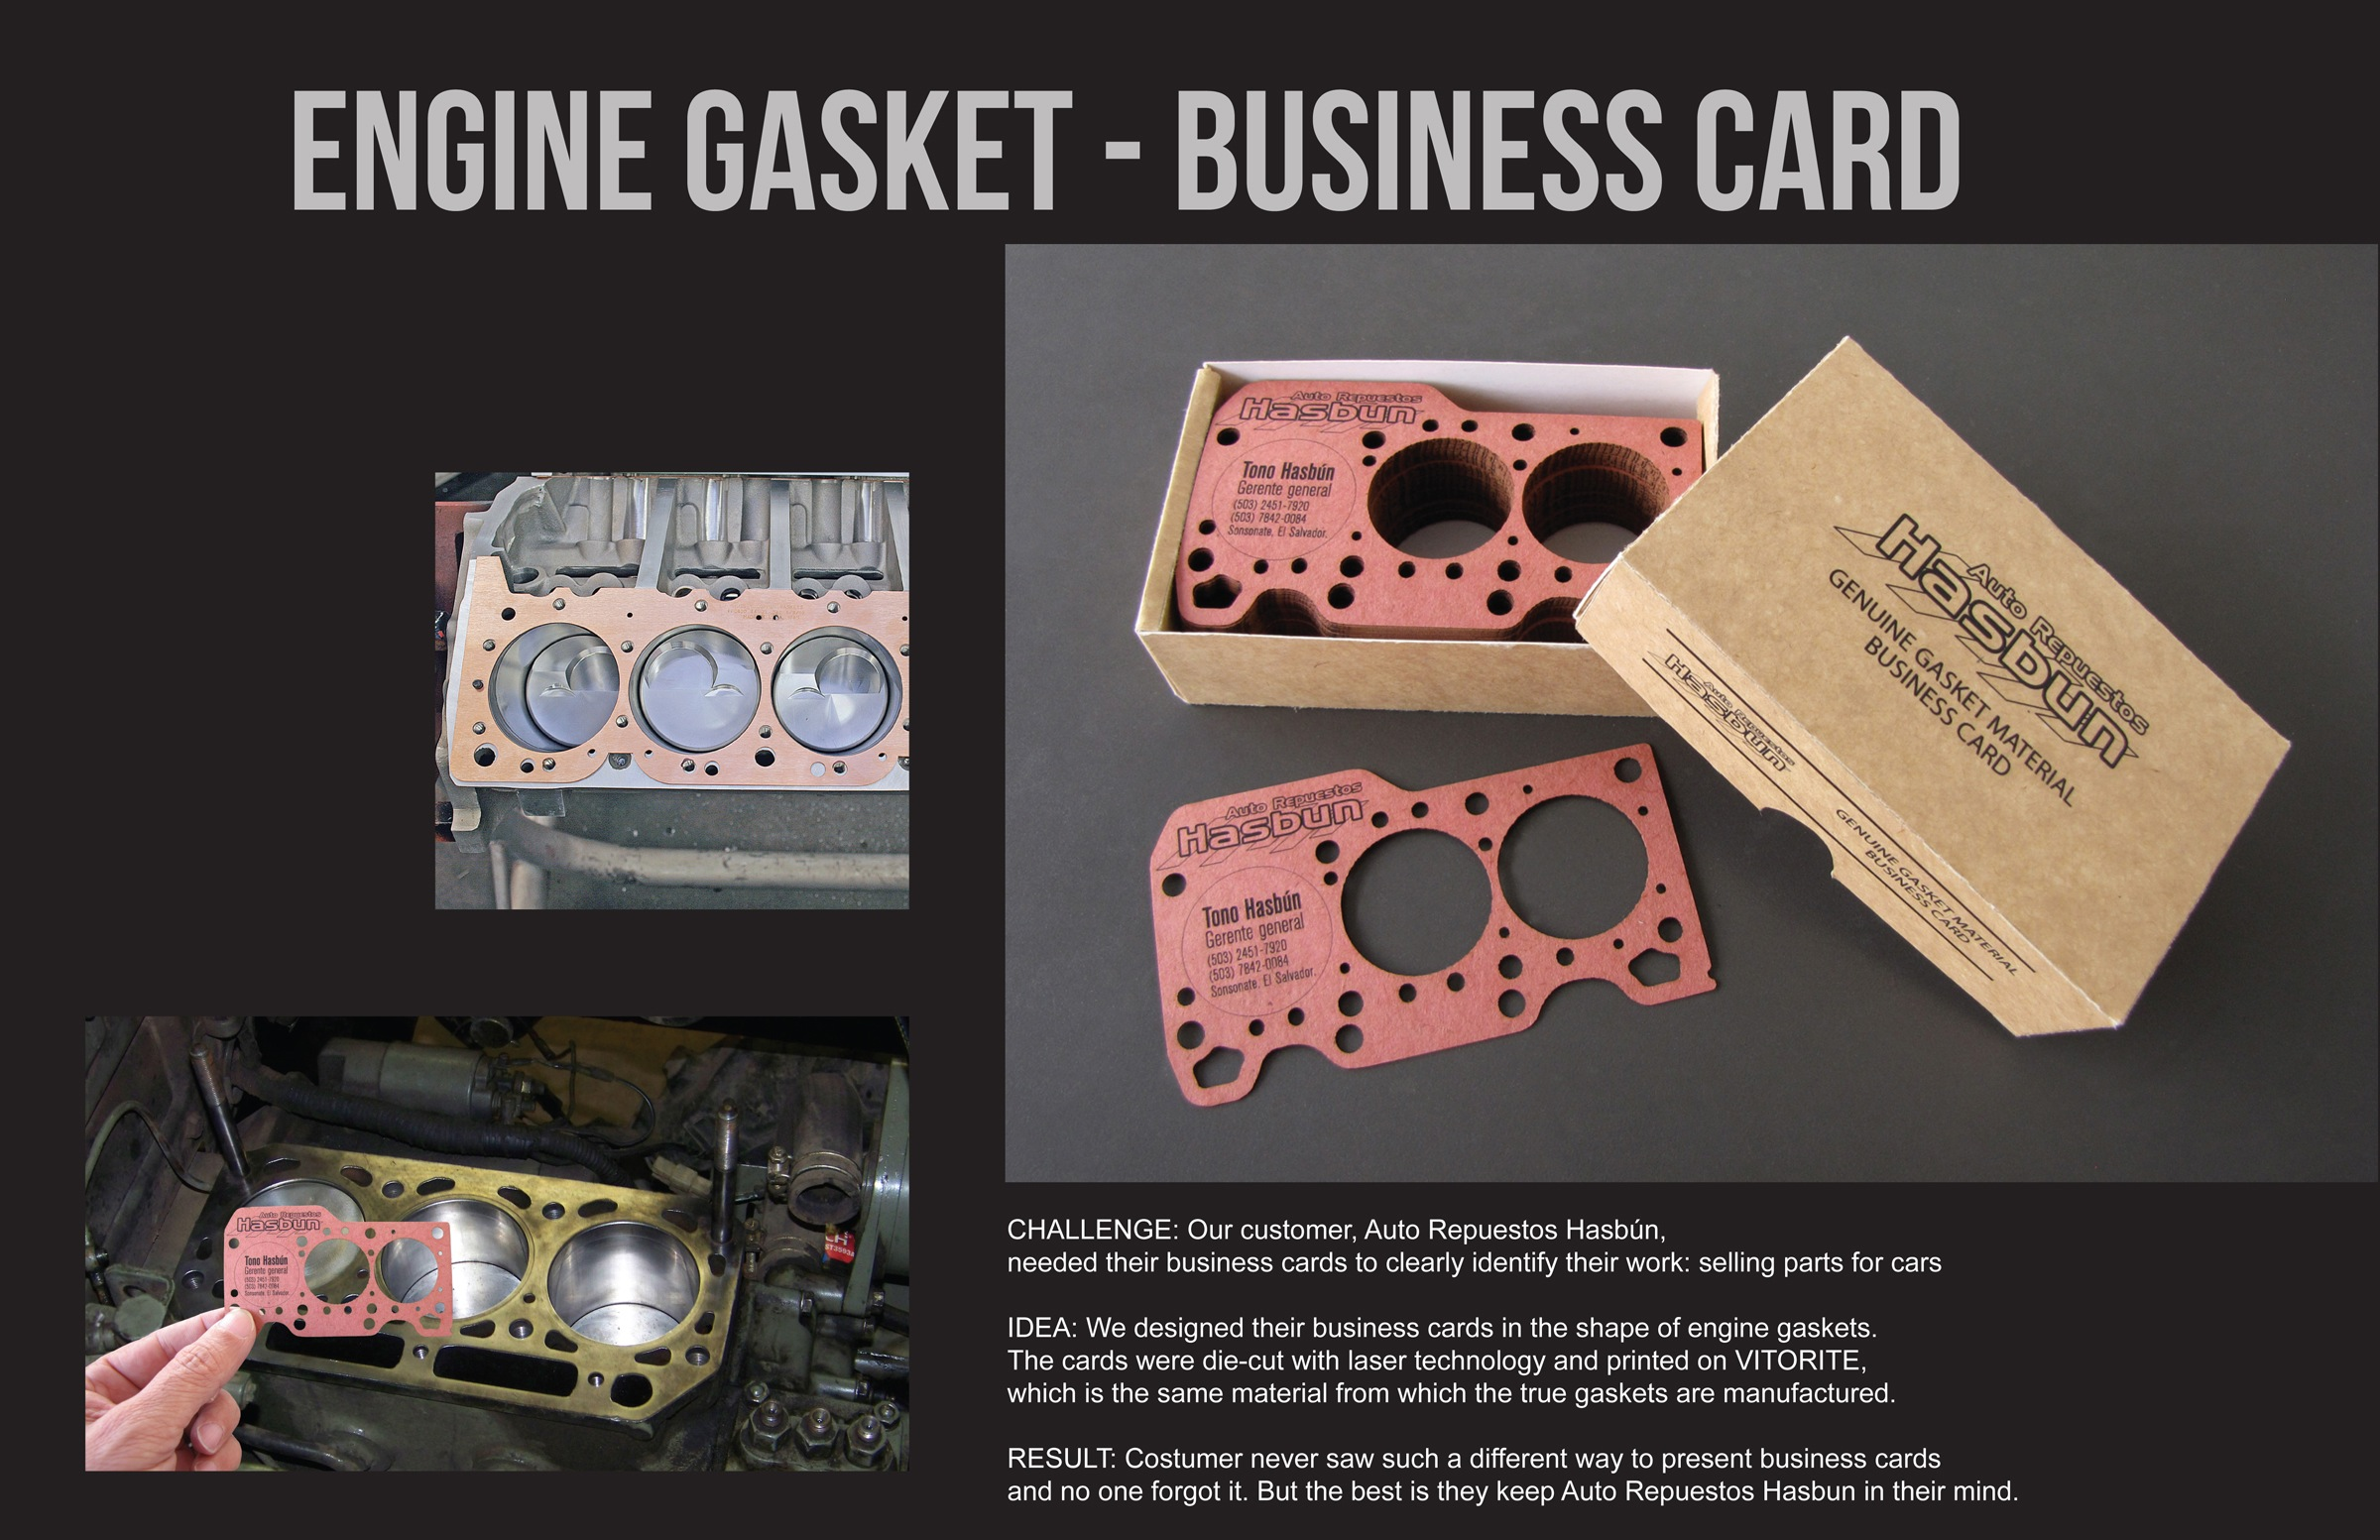 Auto Repuestos Hasbun Direct Advert By BBDO: Engine gasket business ...